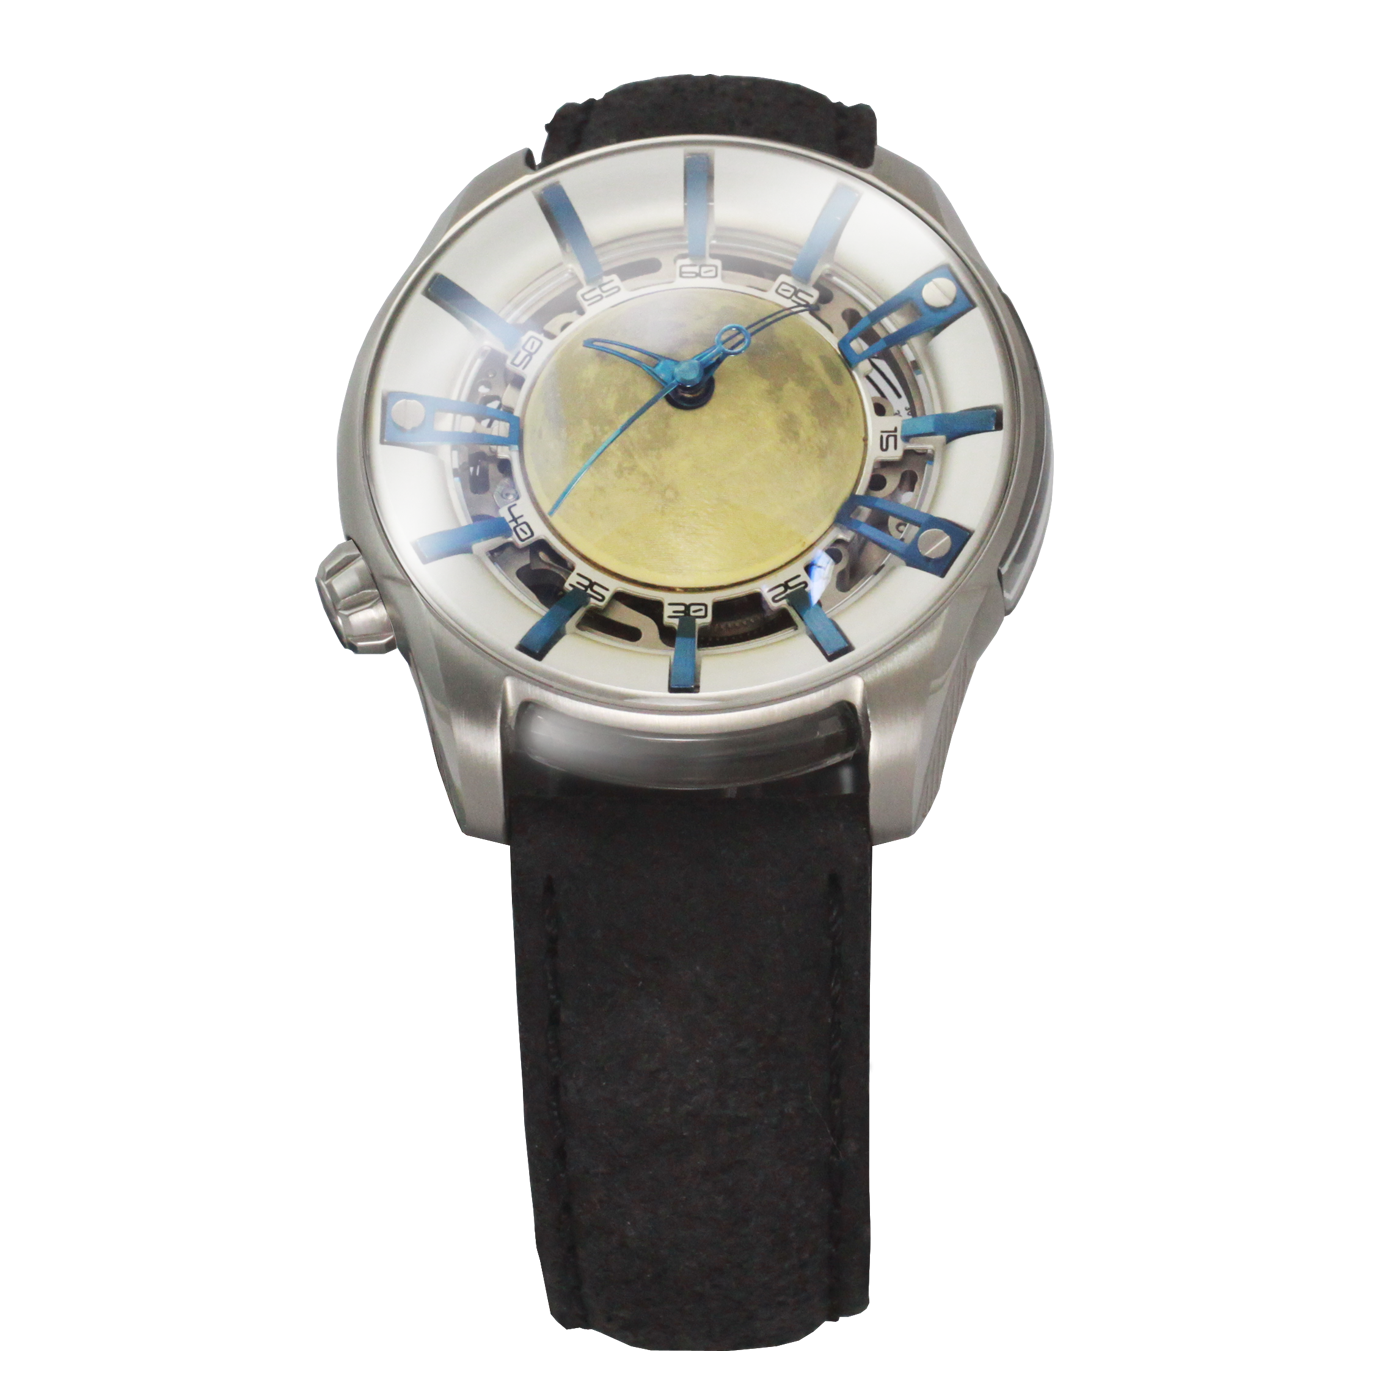 OVD Full Moon MW-001 Automatic Men's Watch Walker Microbrand